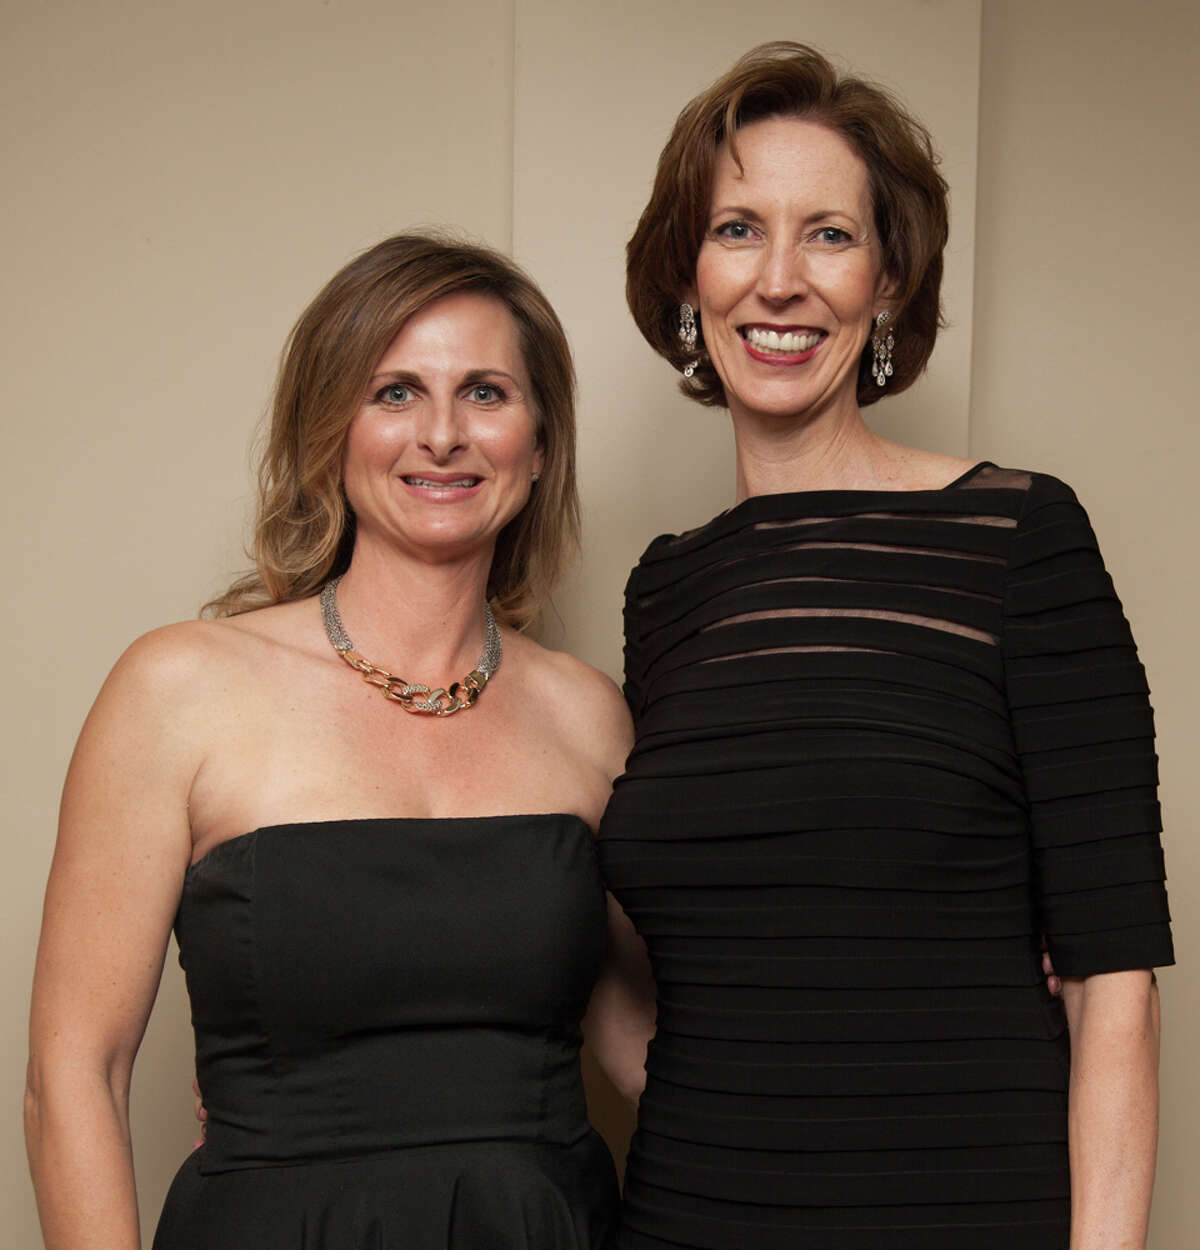 Caroline House held its annual Starry Night Gala at the Inn at Longshore in Westport on April 21, 2017. Caroline House's mission is to enable women and children to reach the fullness of their potential through education in English language and life skills. Were you SEEN at the gala?